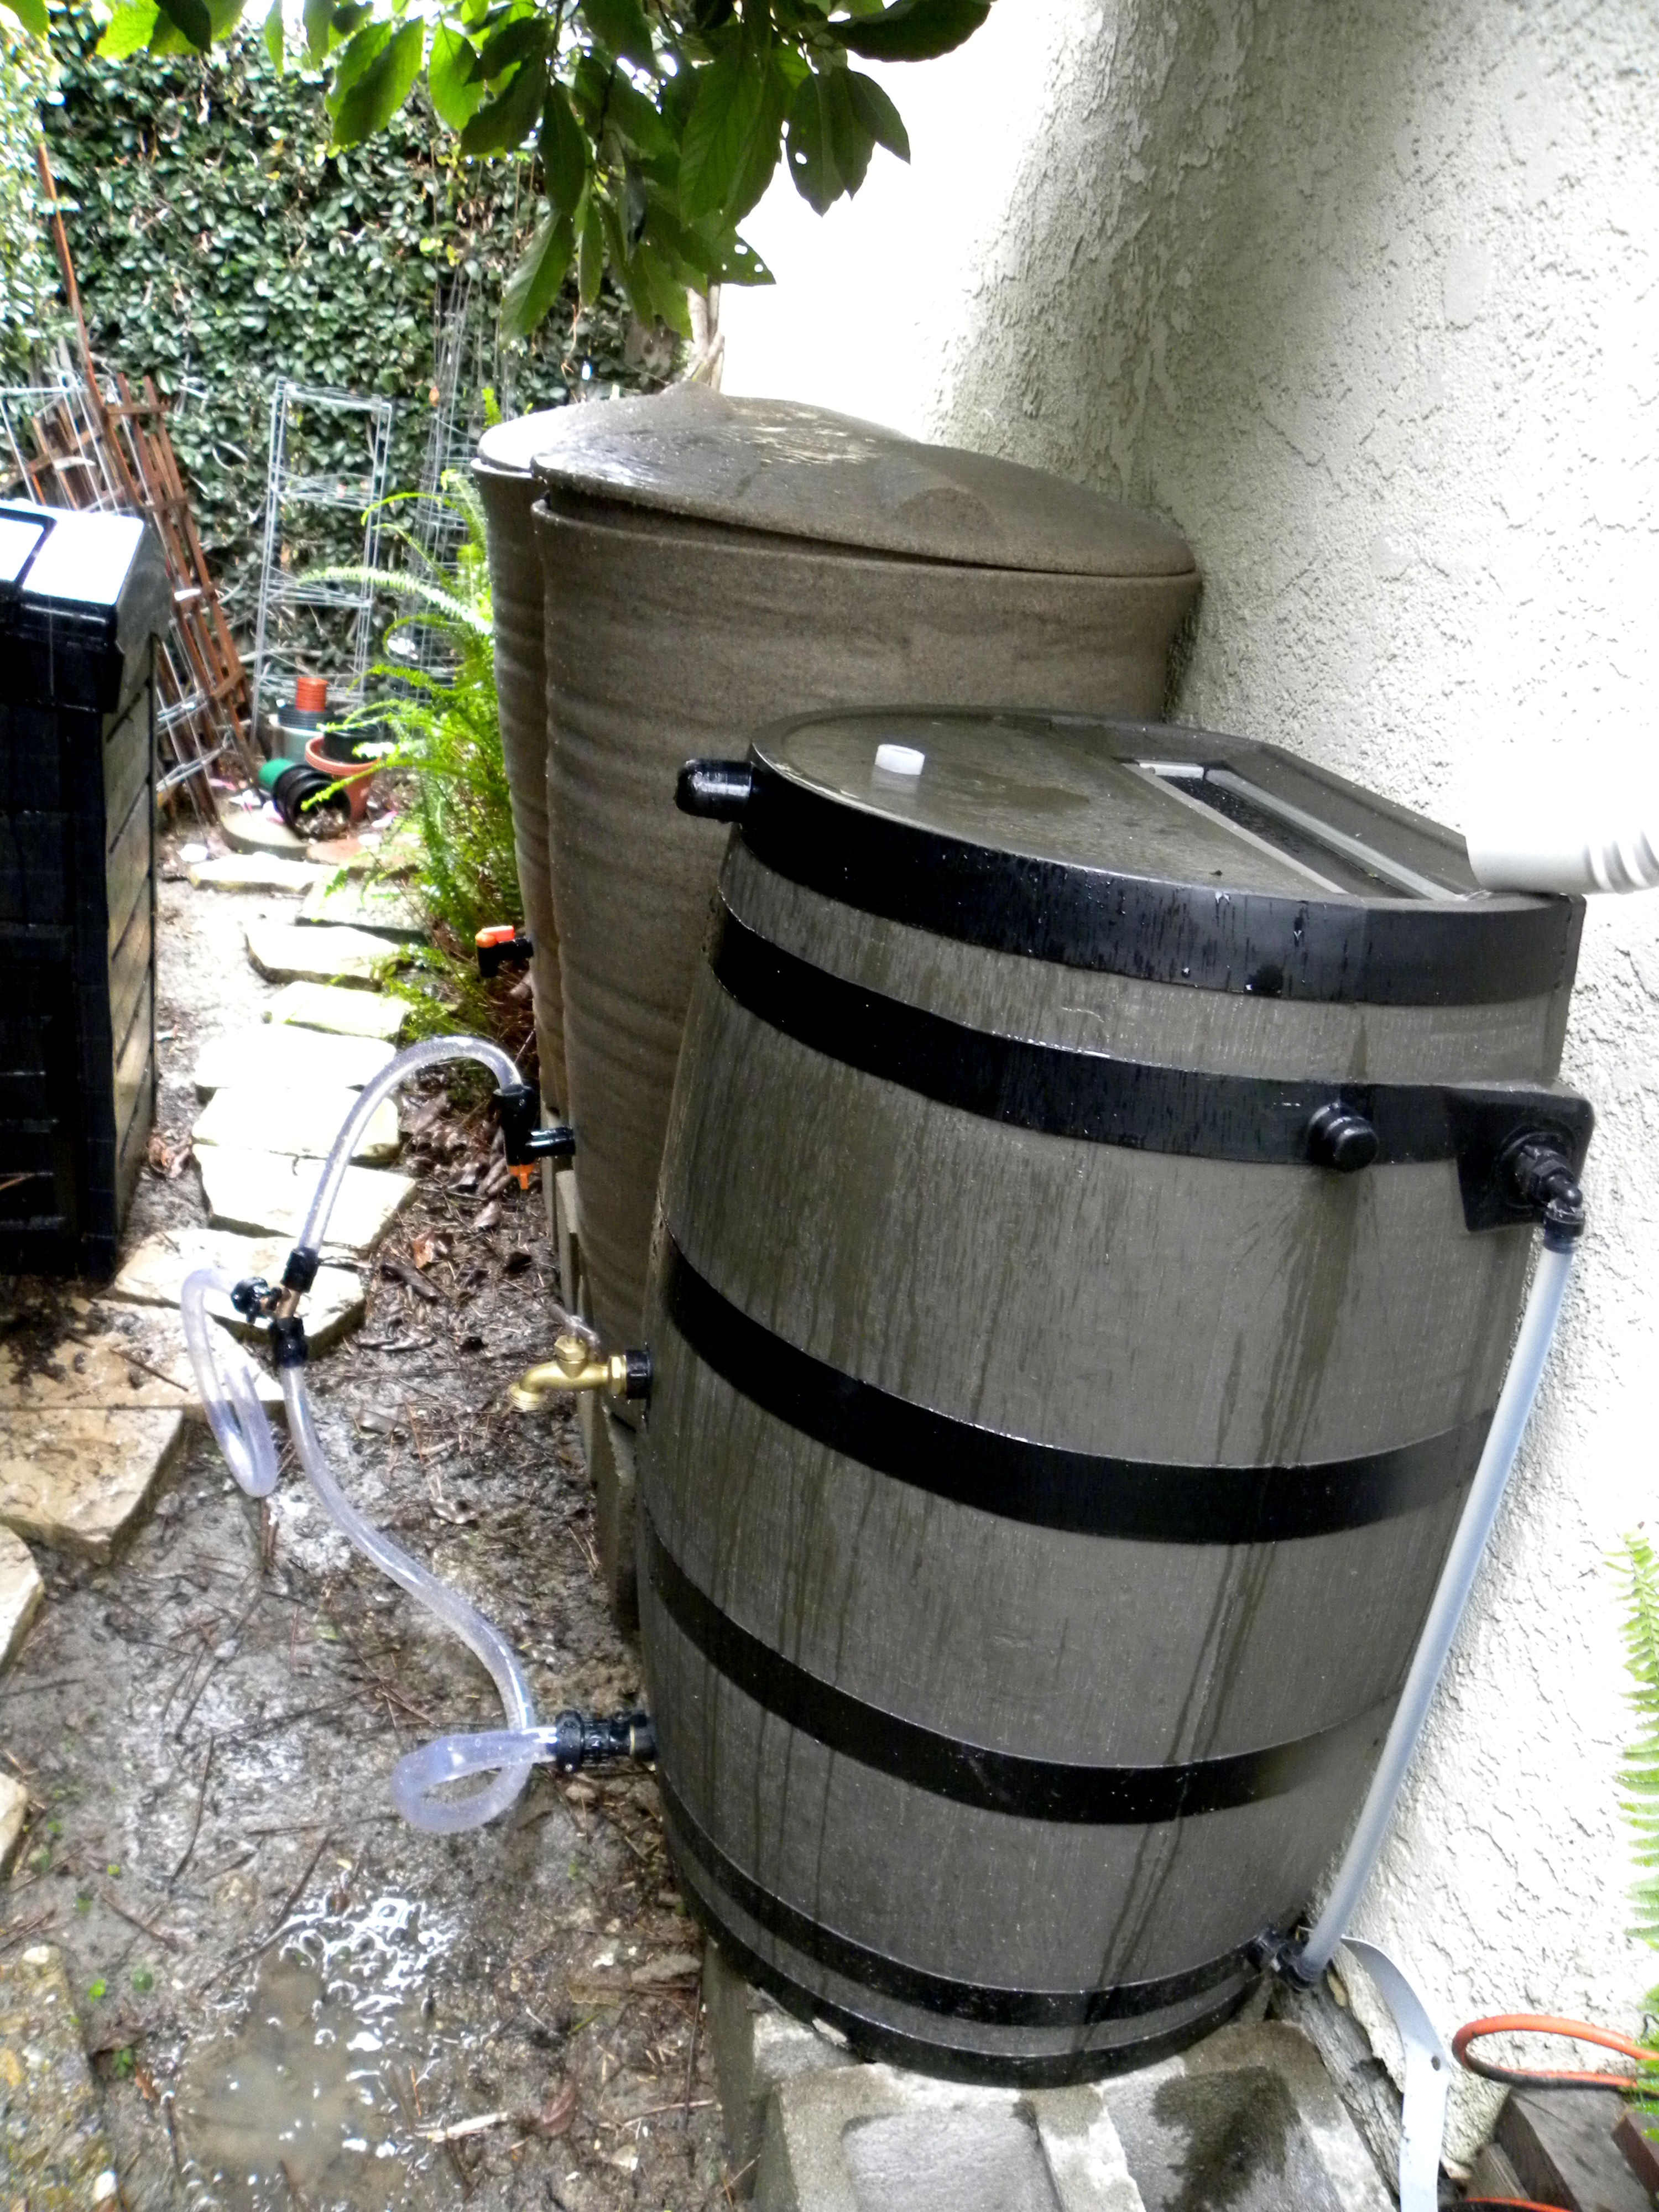 from Francis how do you hook up a rain barrel